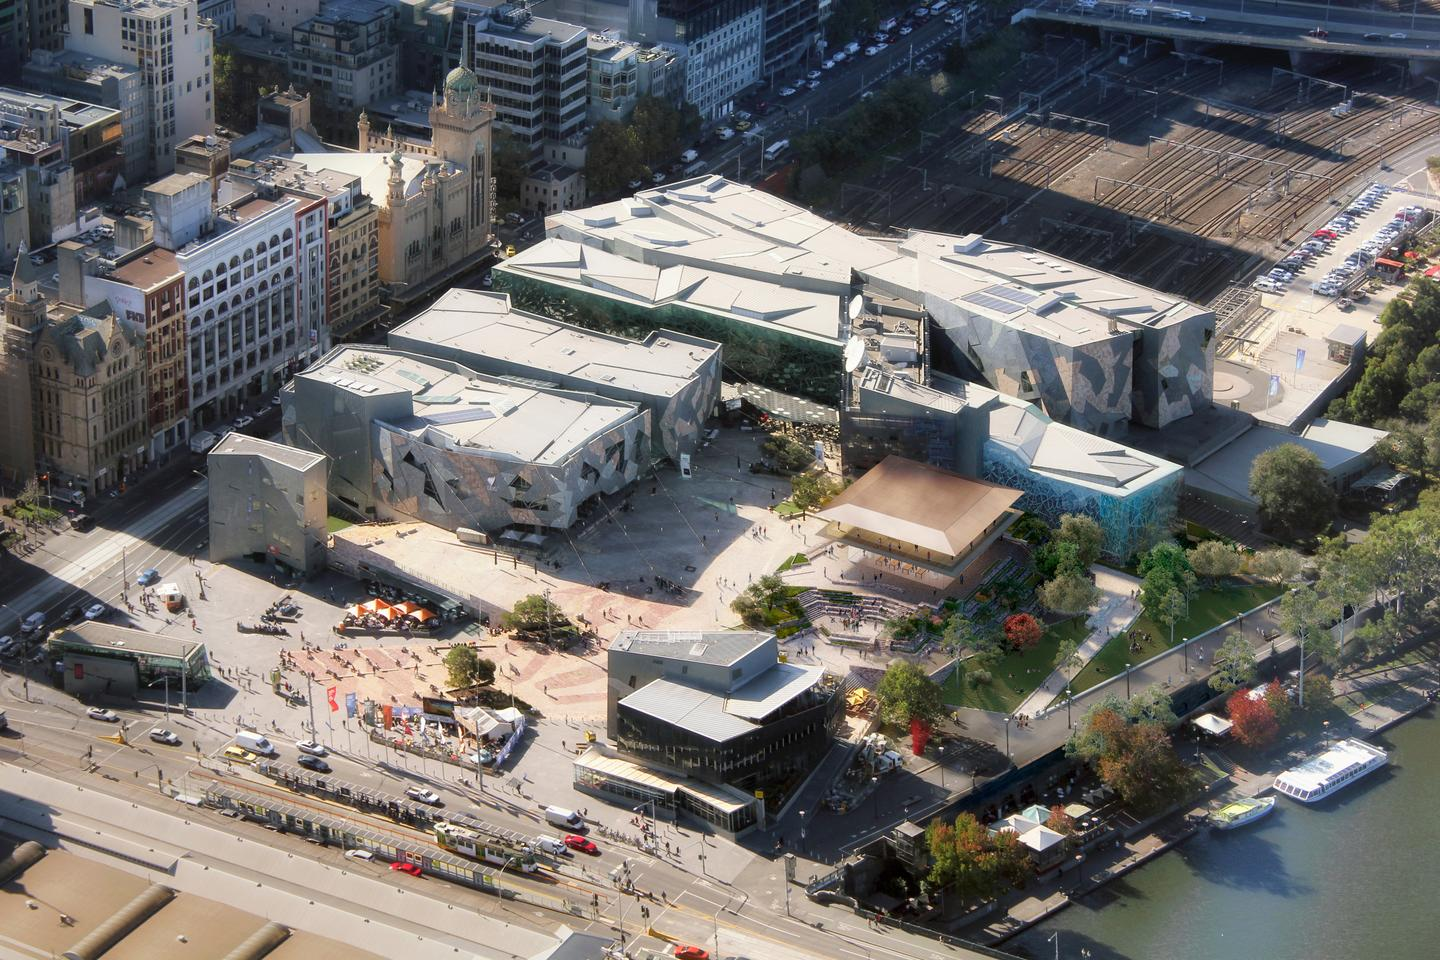 For what its worth, the Victorian government says the Apple Federation Square store will open up almost 500 sq m of public space along the riverside